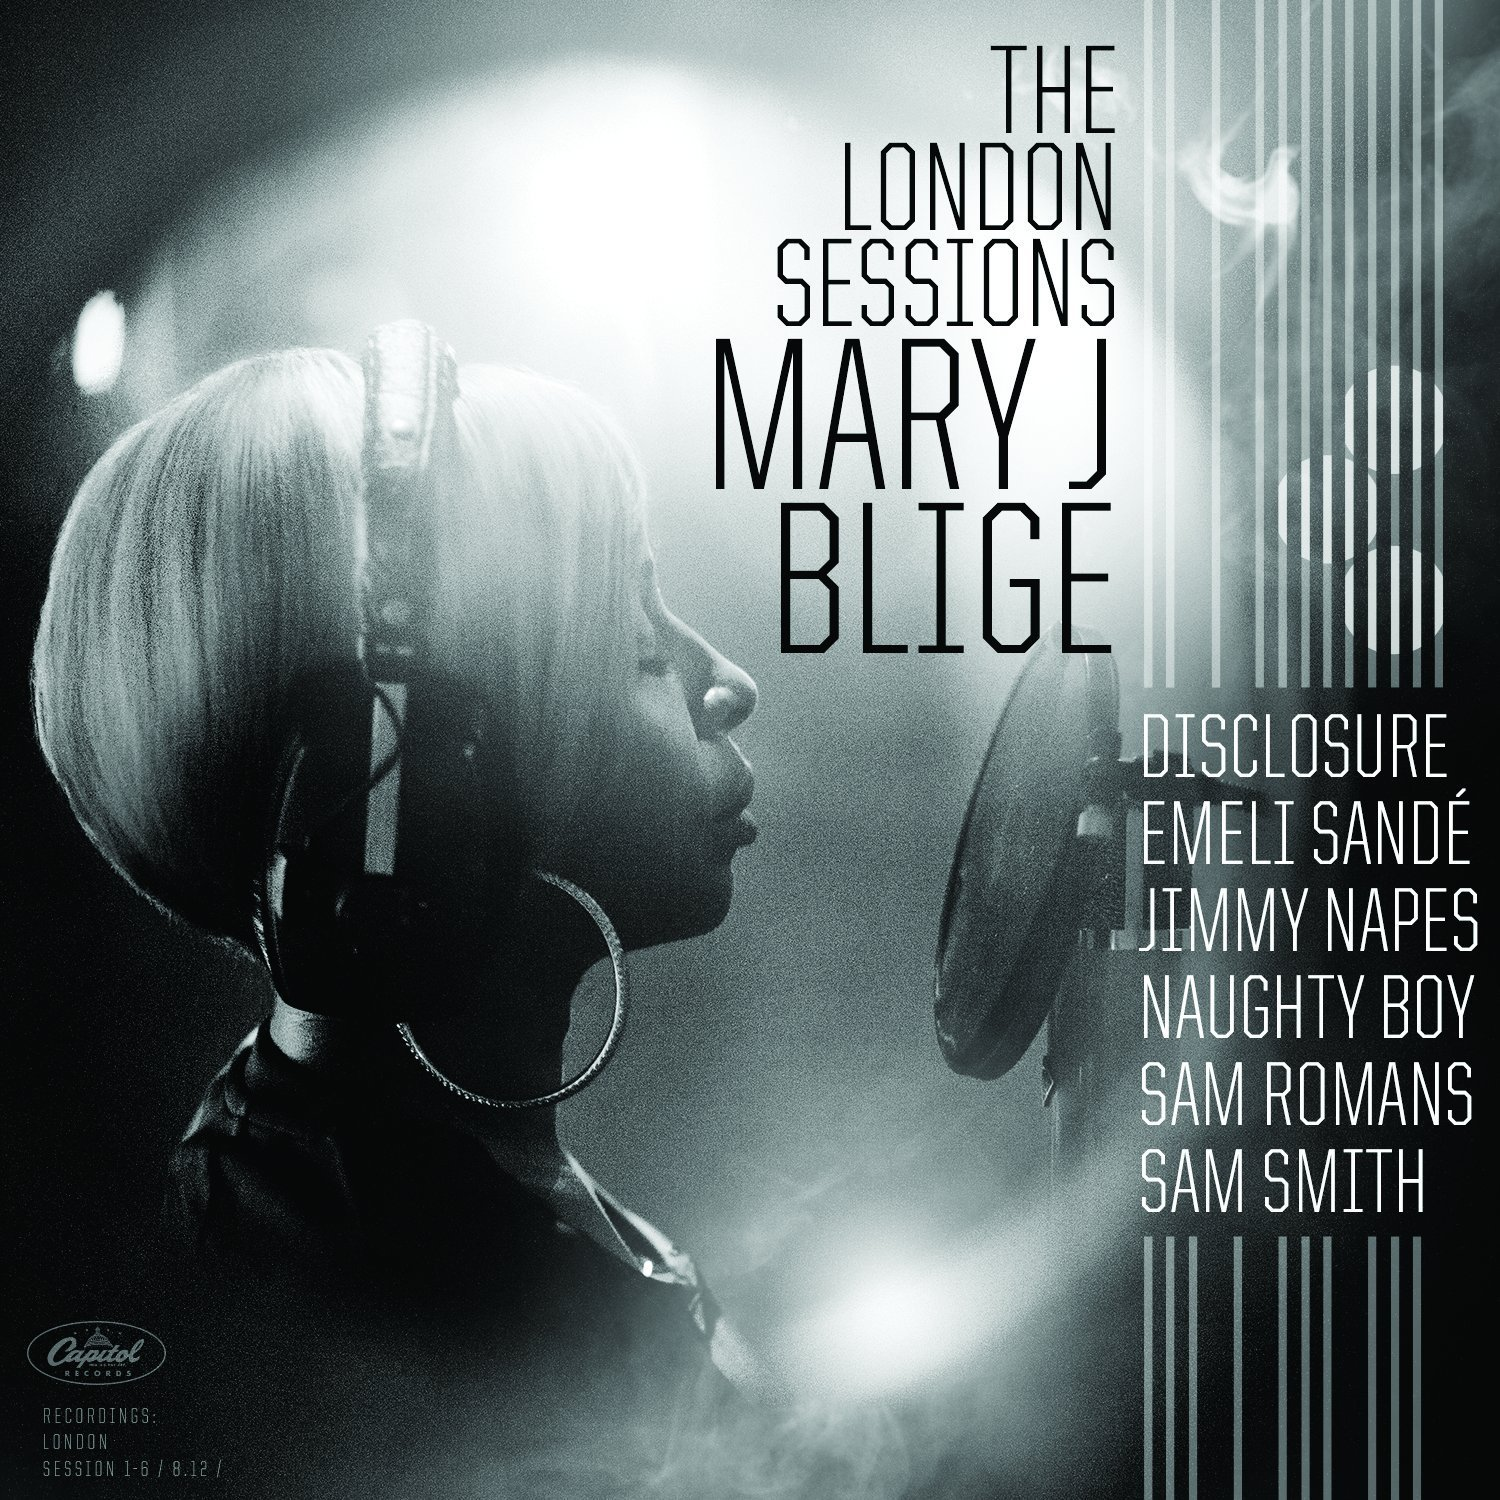 Takeaways from Mary J. Blige's, 'The London Sessions'